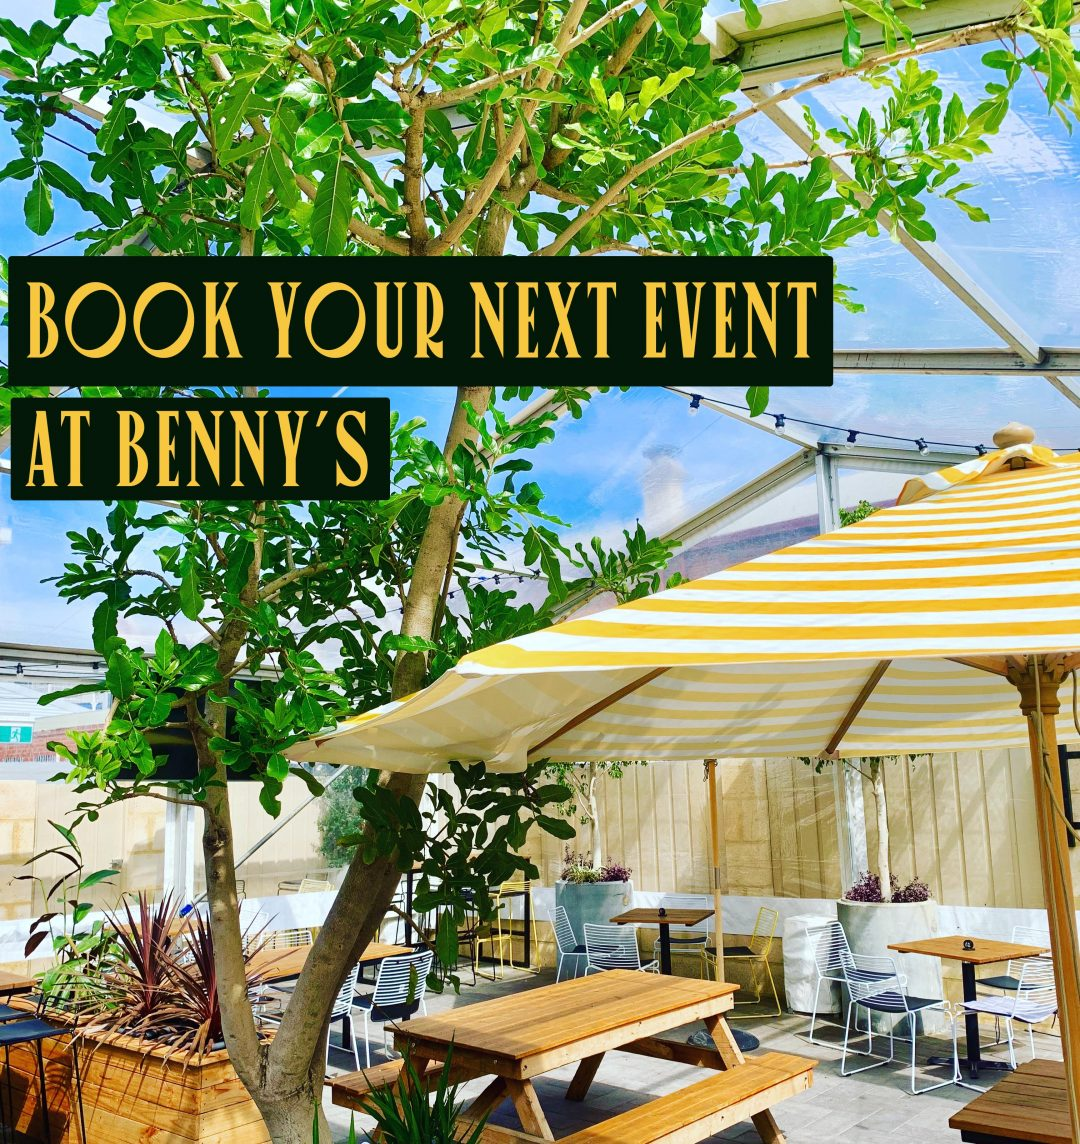 Book Your Next Event at Benny's